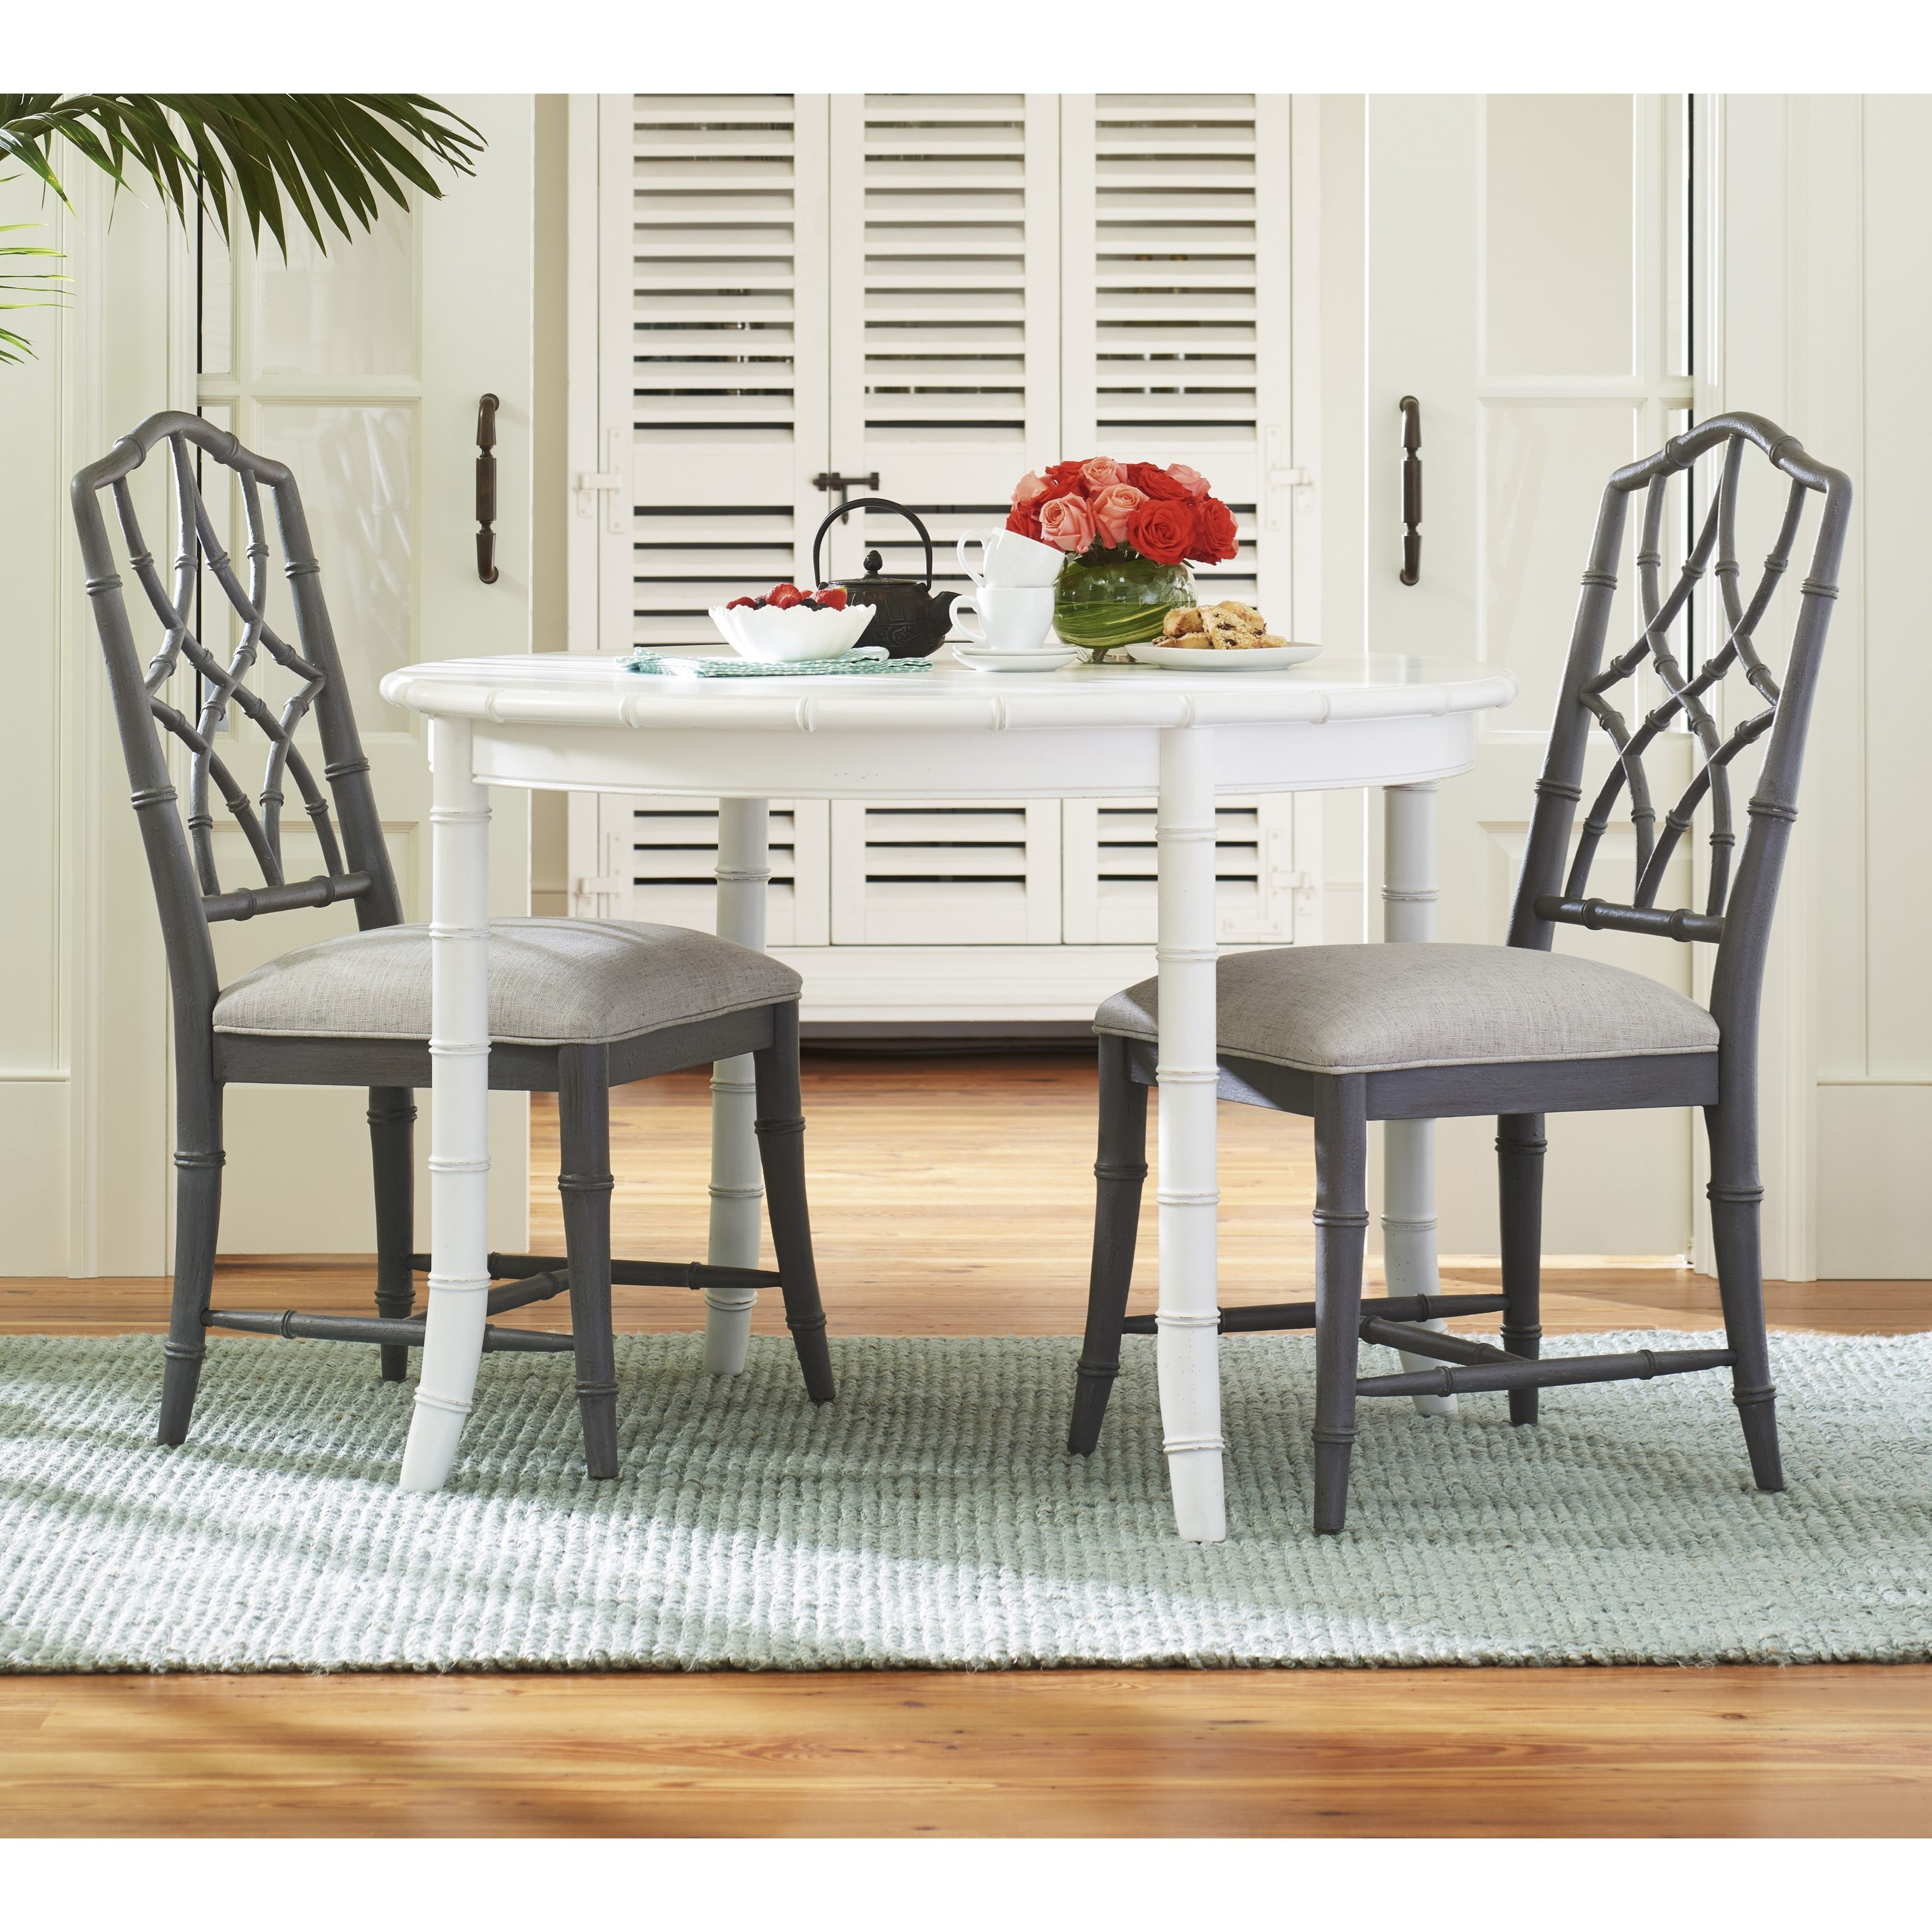 Paula Deen By Universal Bungalow Three Piece Cottage Dining Set With Bamboo  Inspired Framing